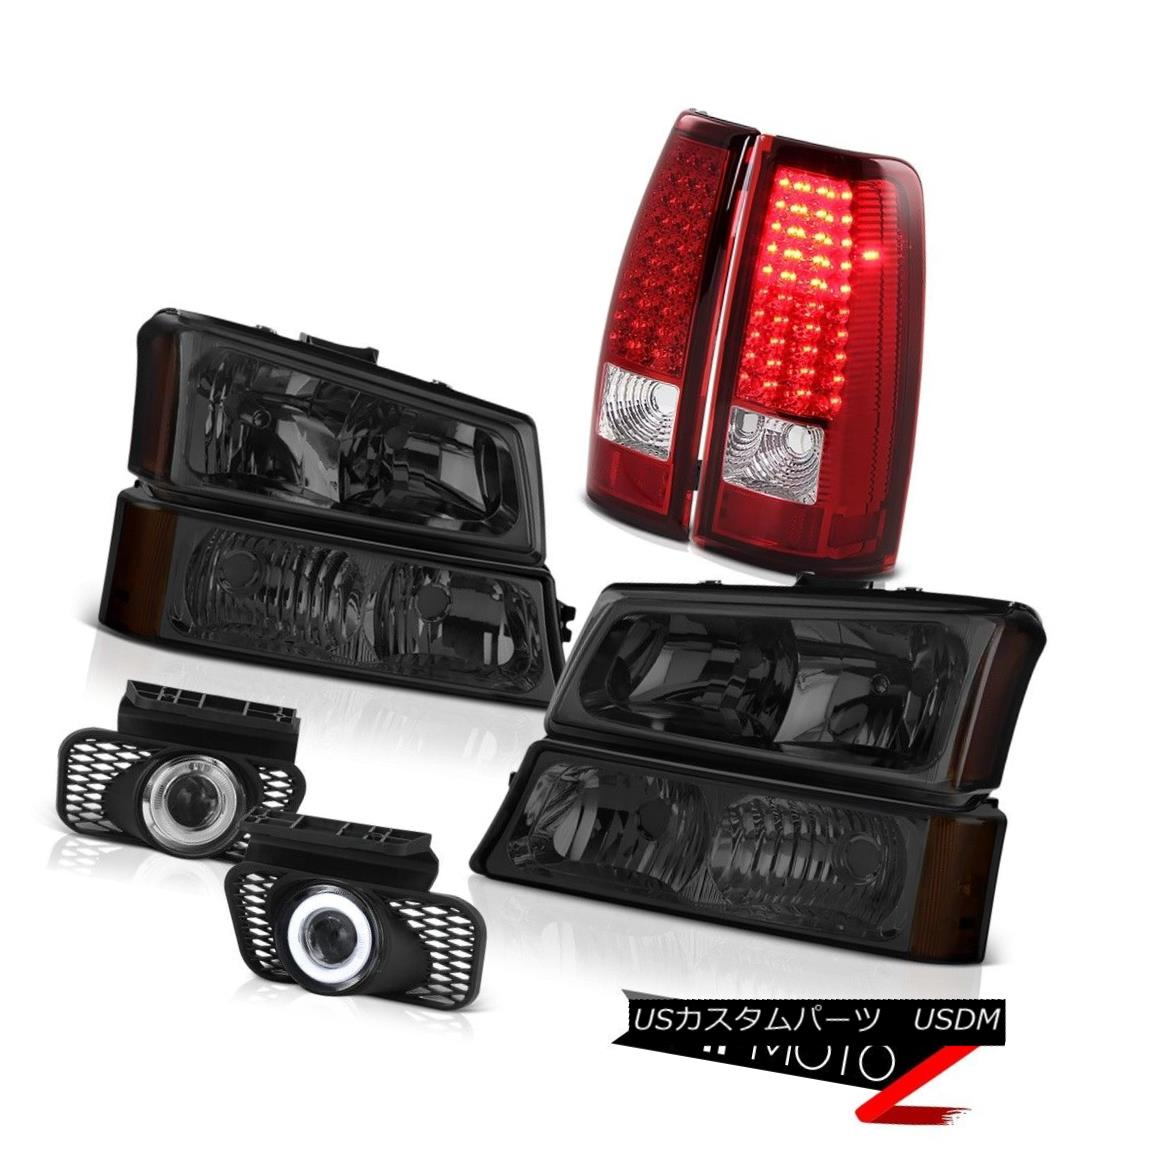 ヘッドライト 2003-06 Silverado 4.3L V6 Smoke Bumper Headlights LED Bulb Tail Lights Foglight 2003-06 Silverado 4.3L V6煙バンパーヘッドライトLED電球テールライトFoglight